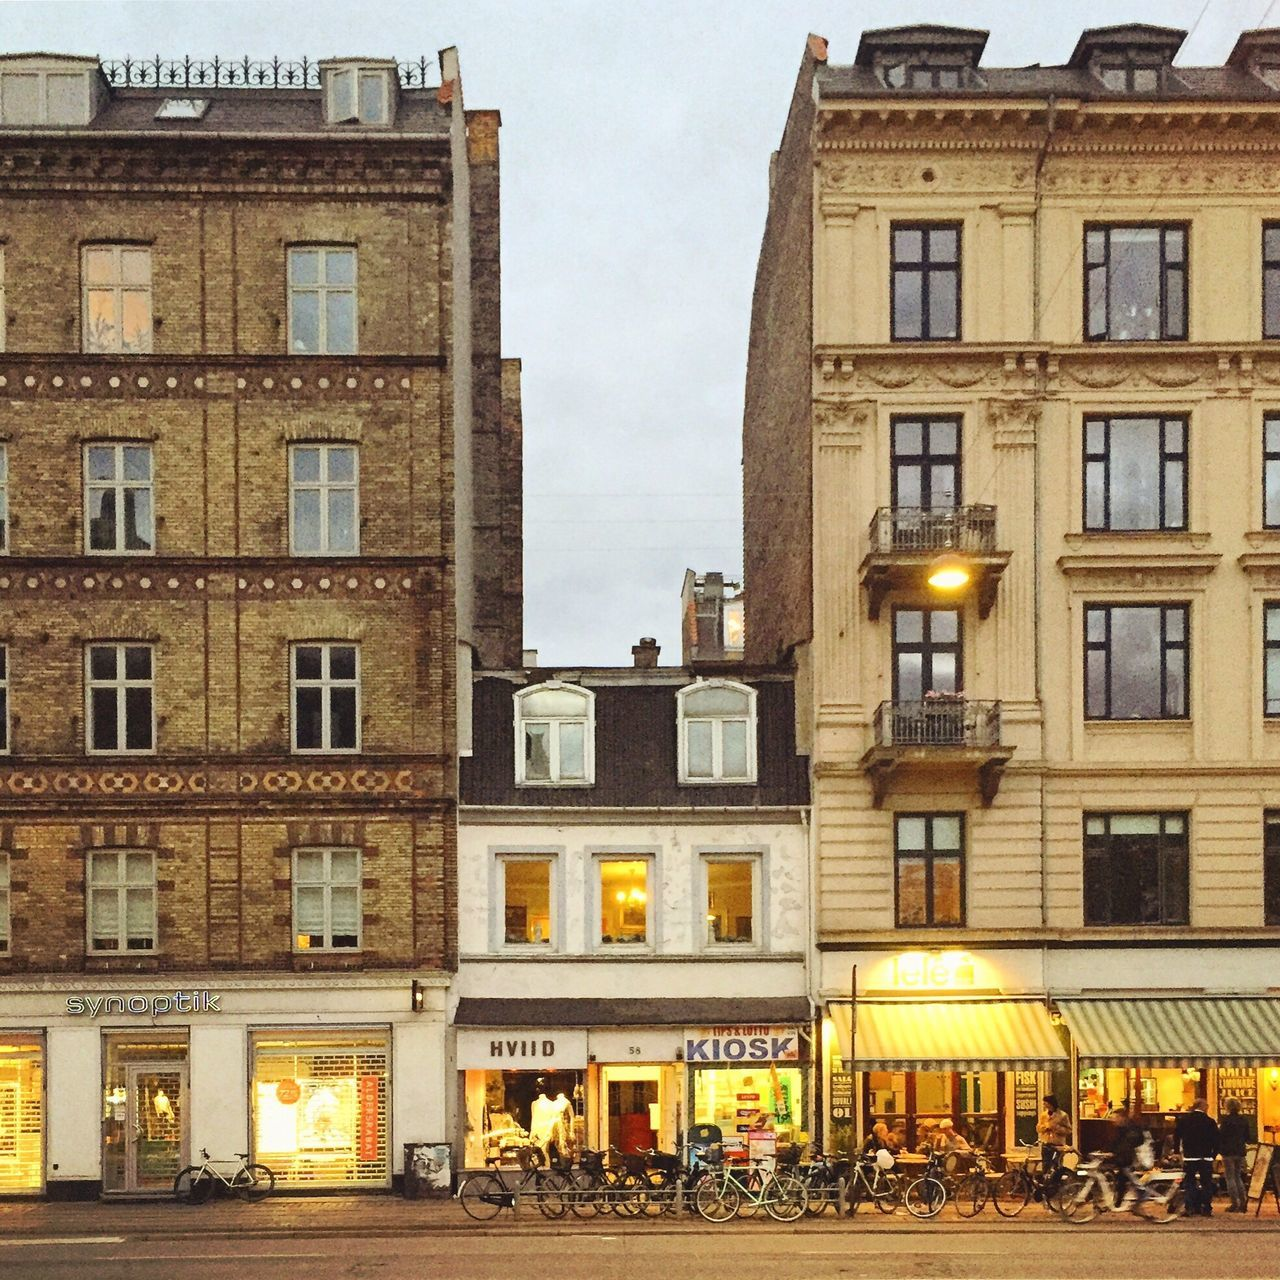 Building Exterior Architecture Built Structure City Window Outdoors Store Sky Illuminated Day No People Holdout Tiny Building  Sandwiched Favorite Building Denmark Copenhagen, Denmark Copenhagen